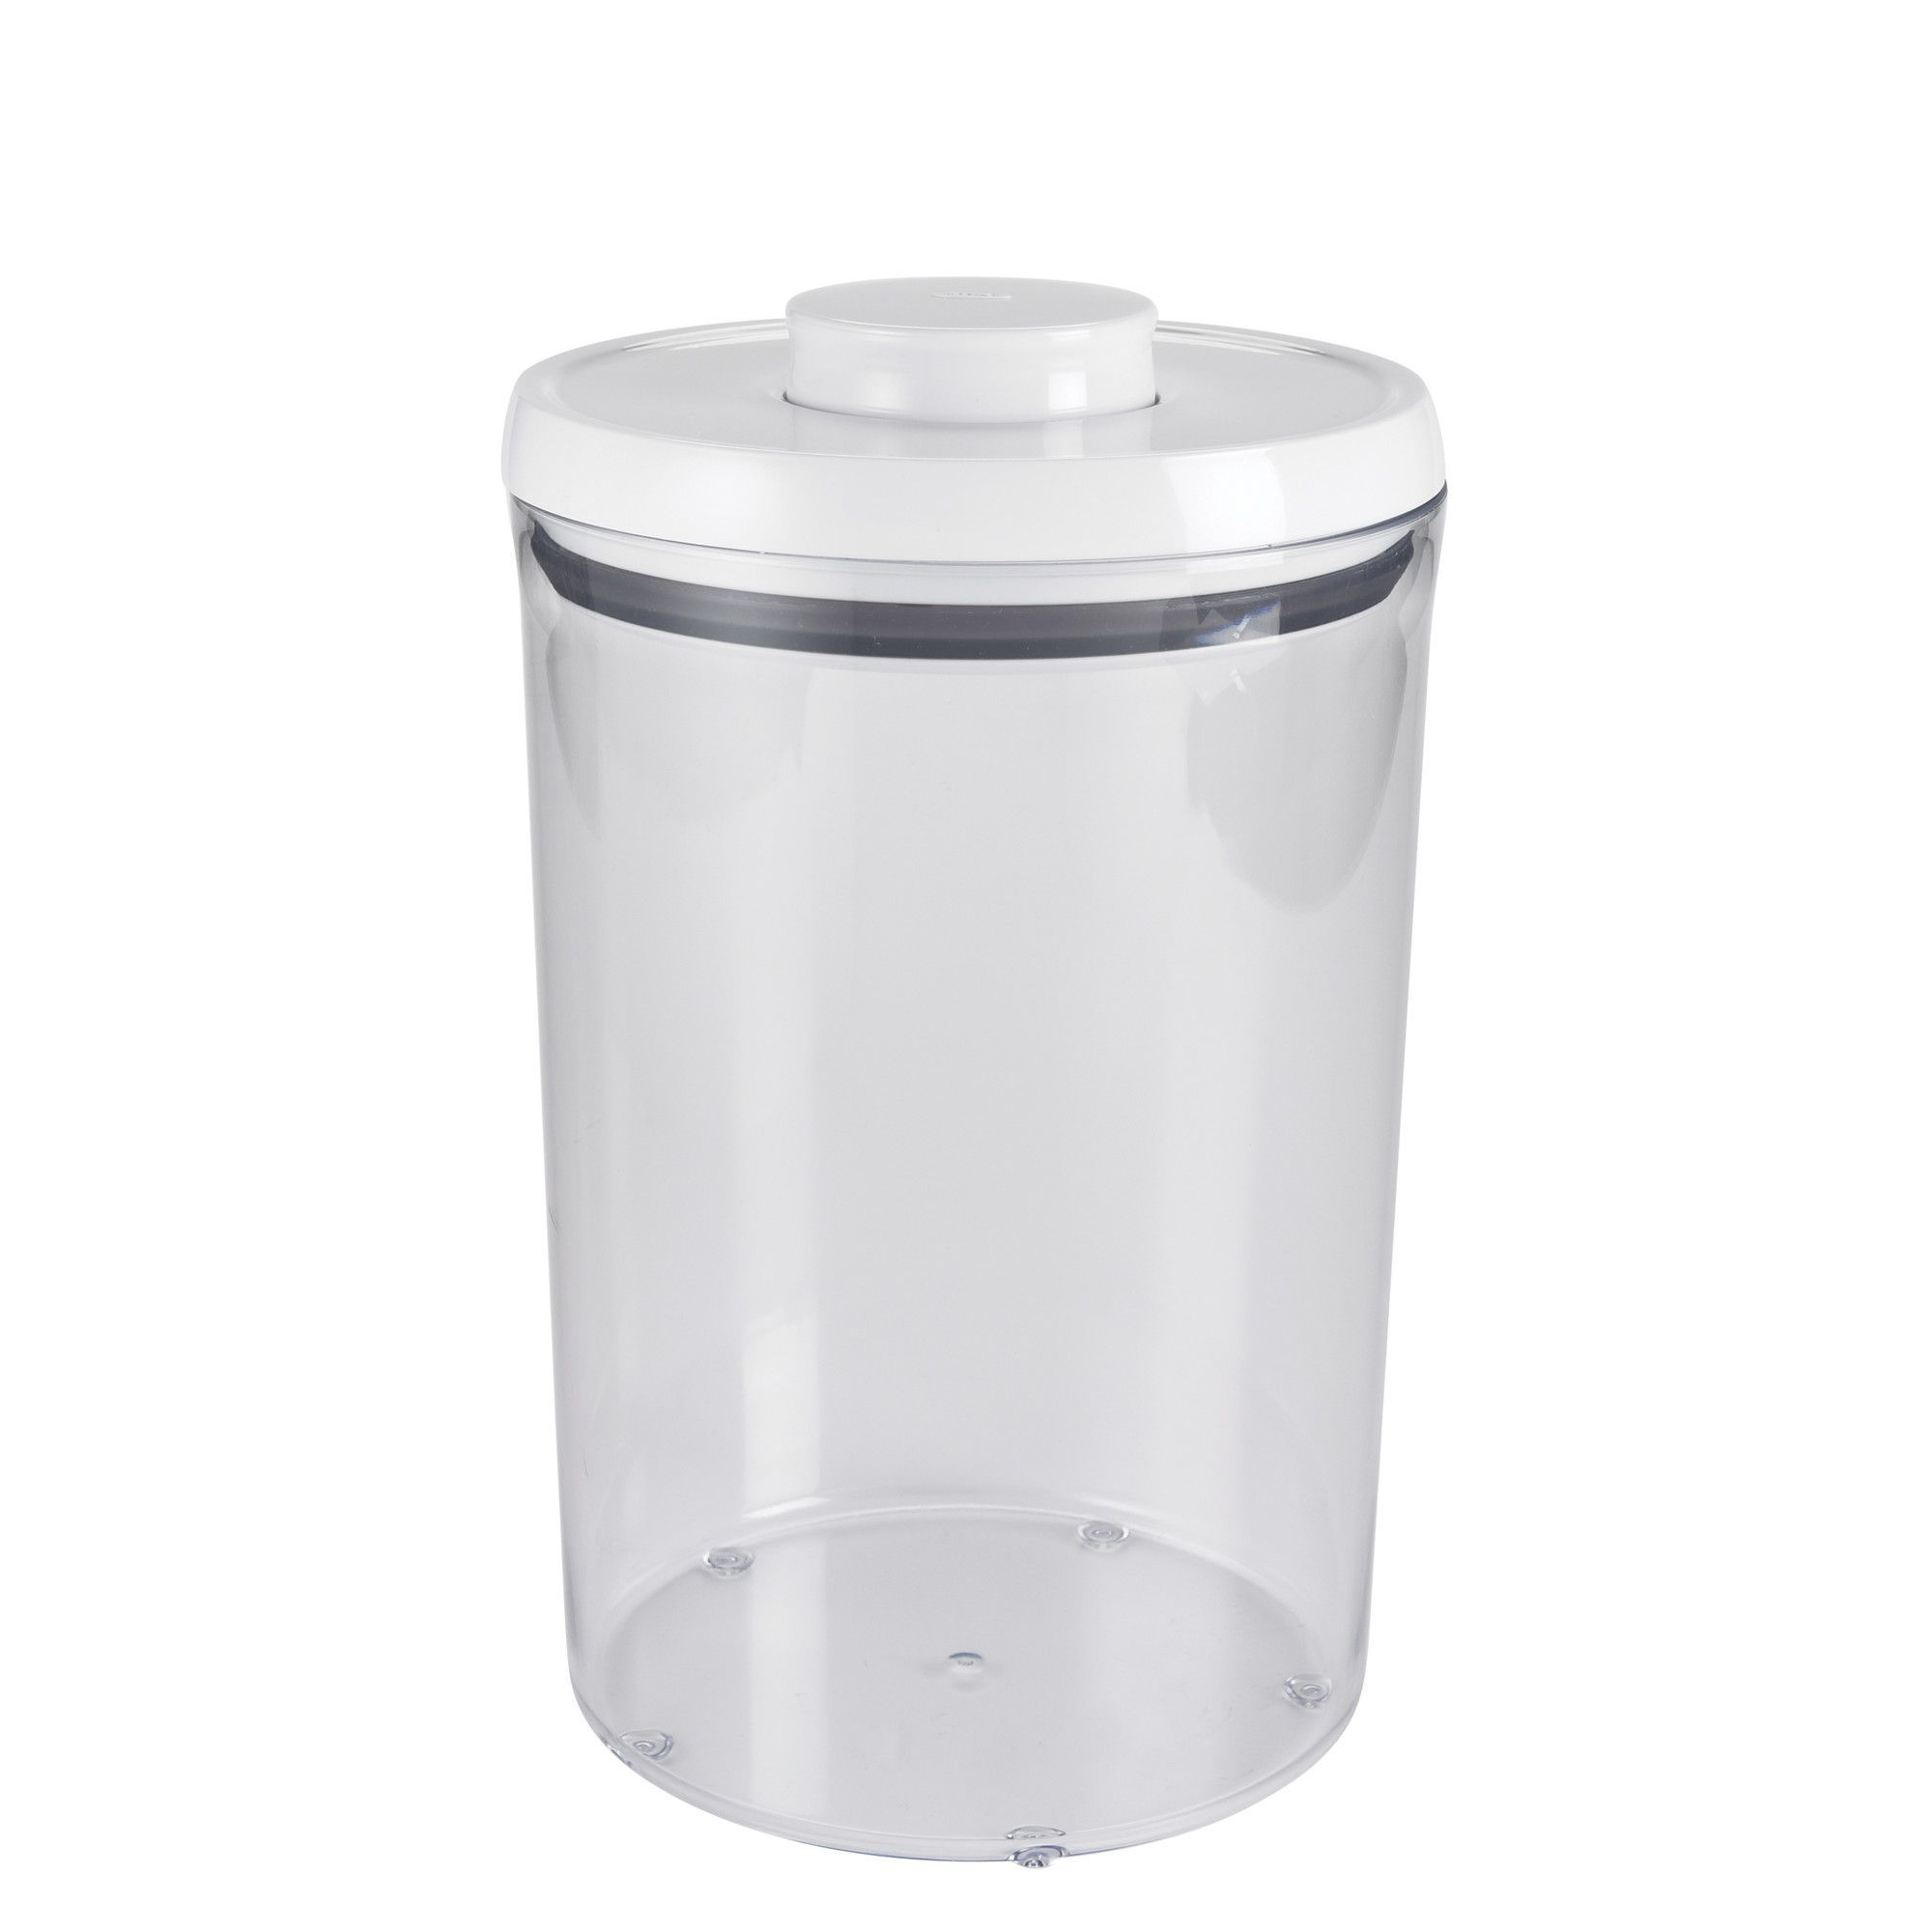 Cassettiera cucina kosher : Good grips 4.5 quart round pop canister canisters and pop